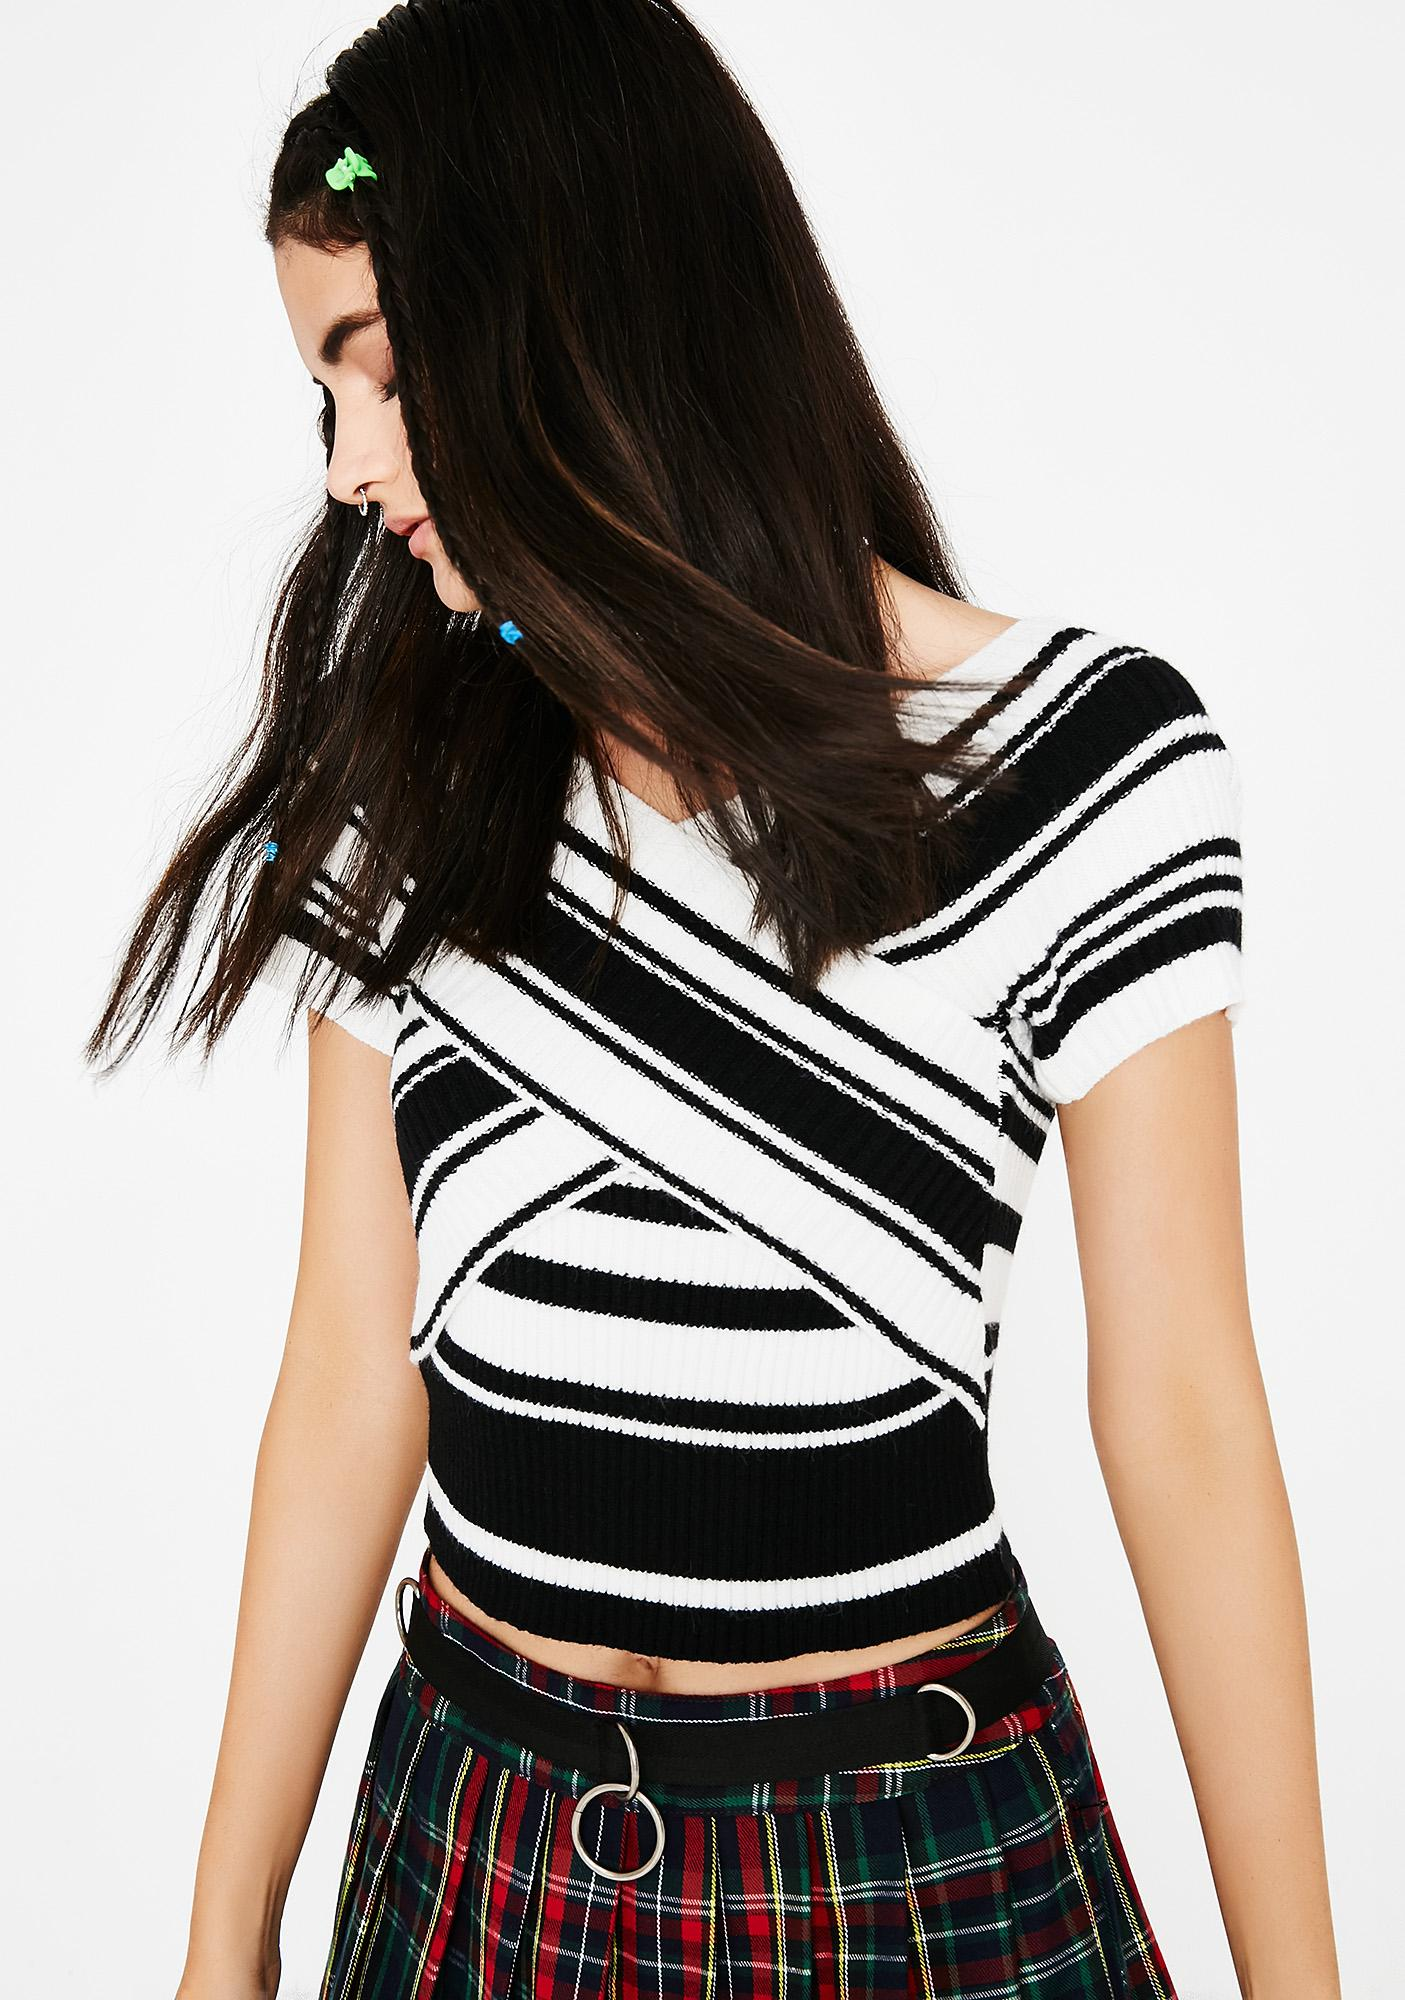 Jail Bait Striped Top